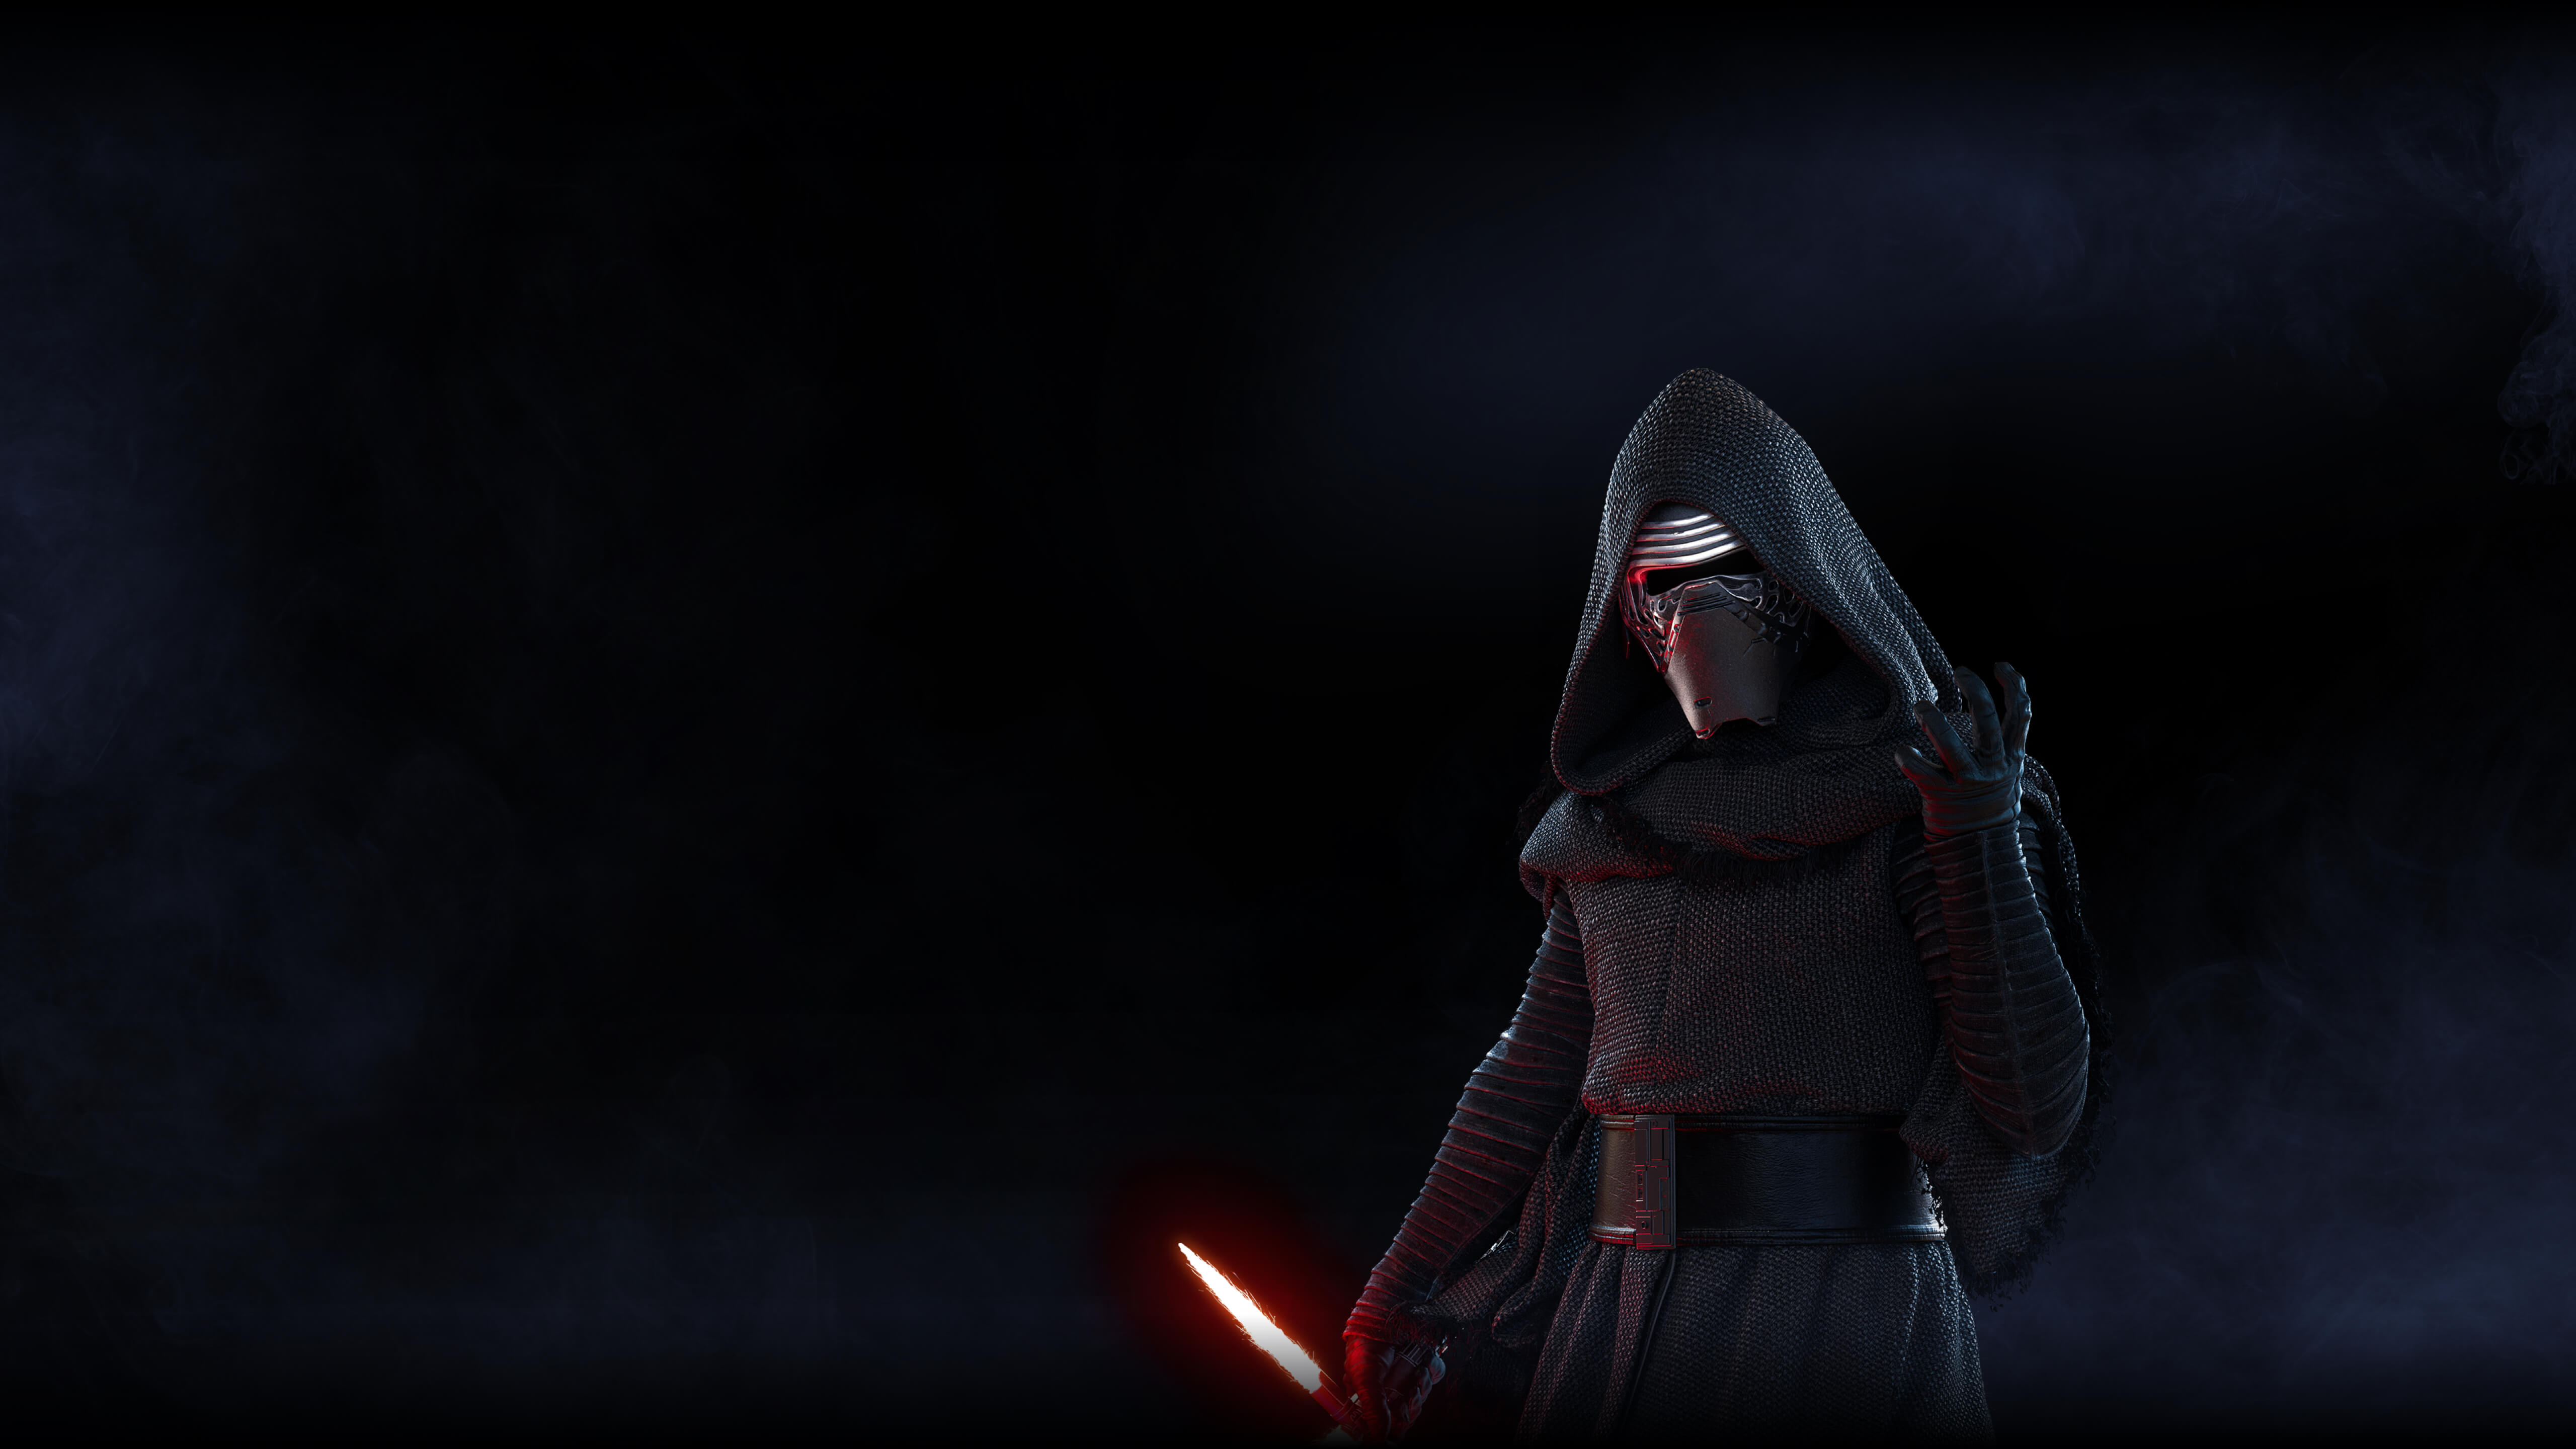 Star Wars Battlefront II Kylo Ren 5K Wallpapers